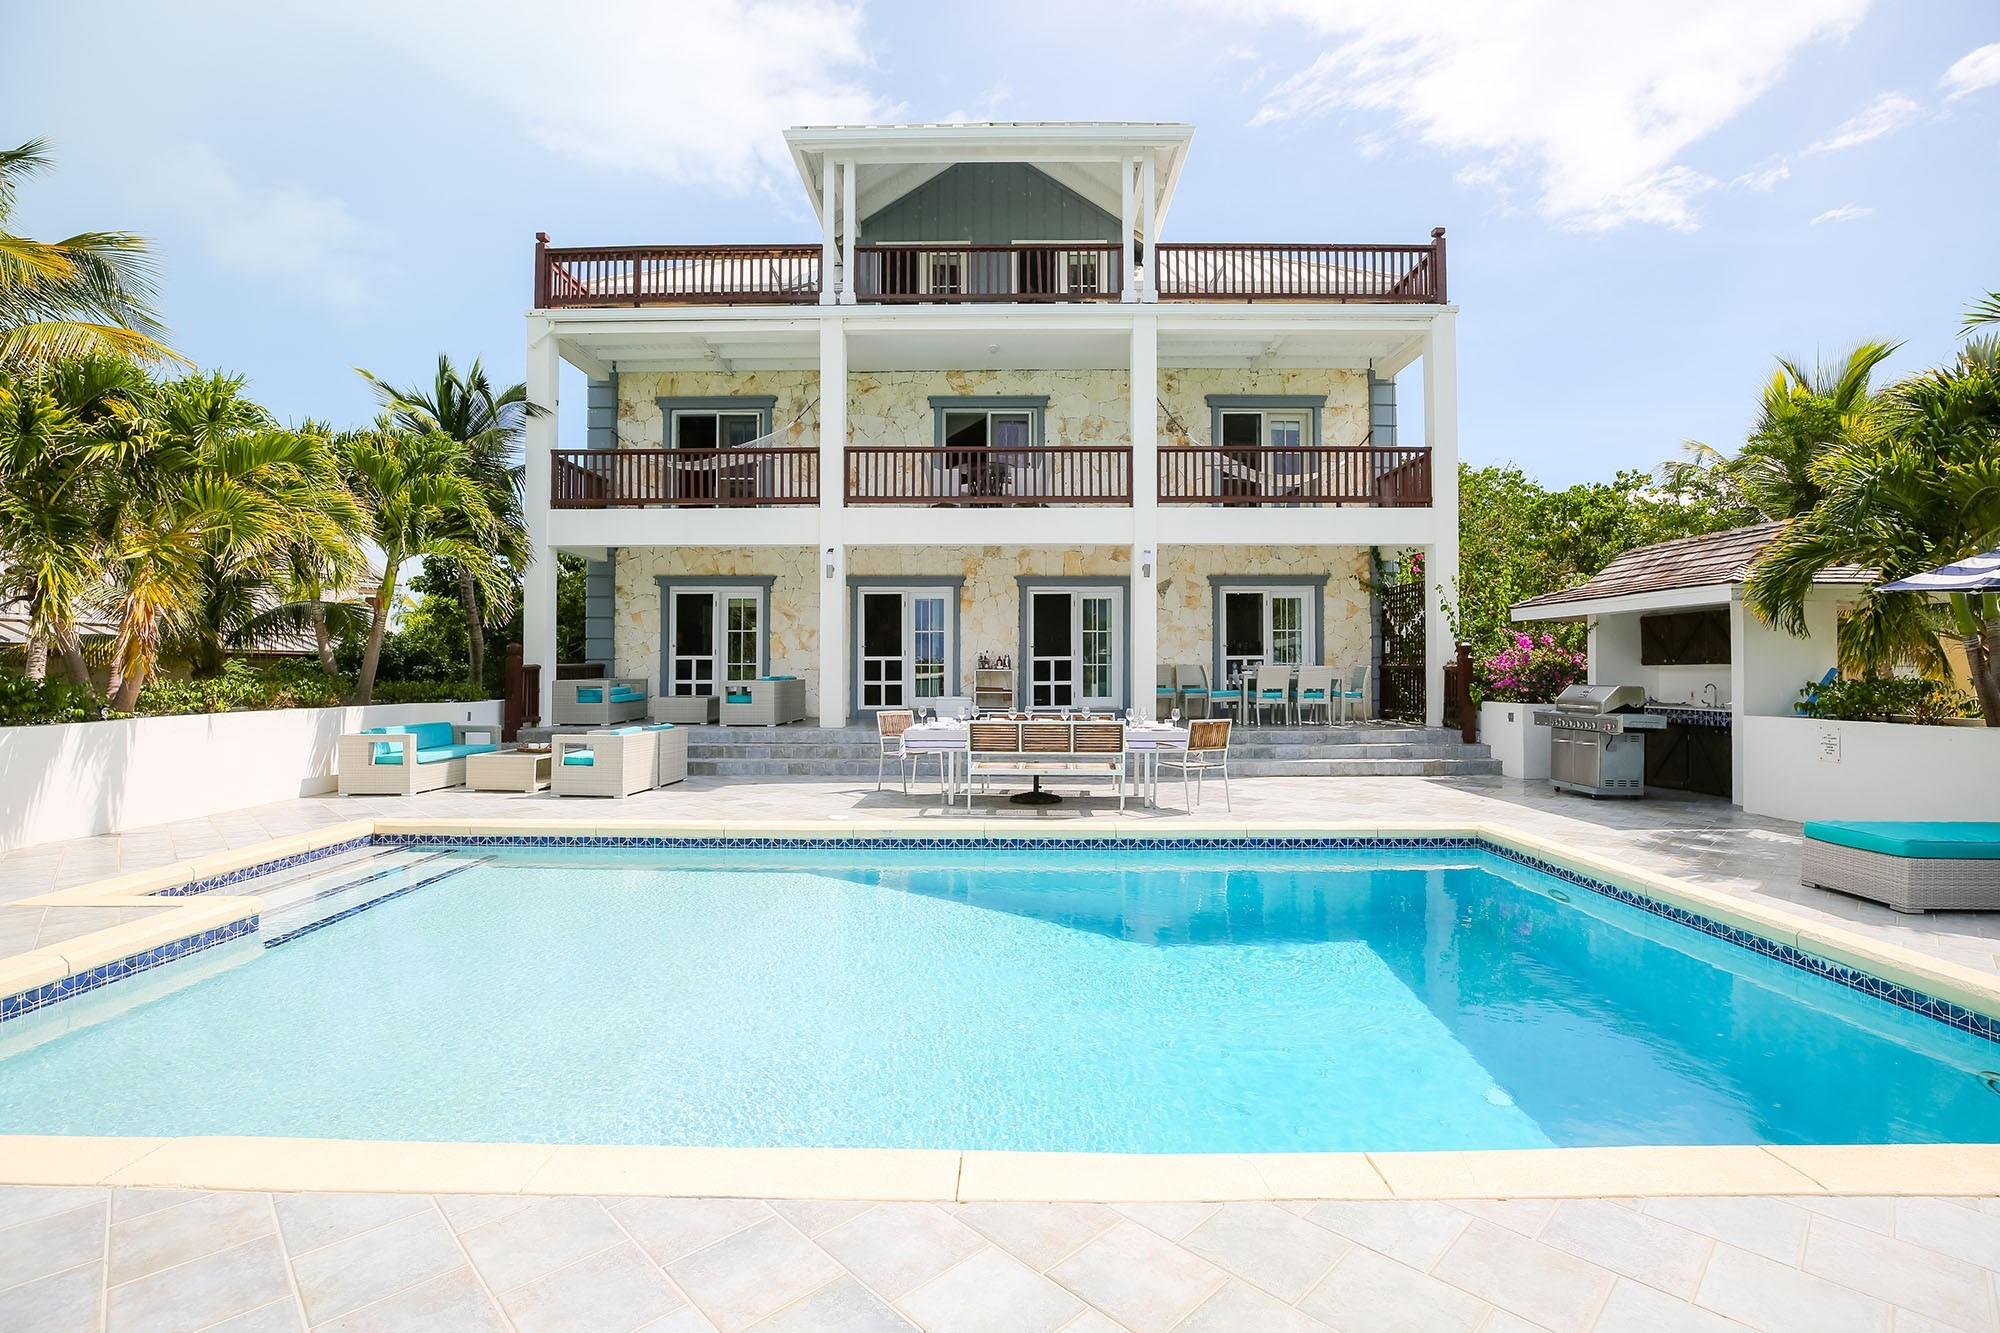 pool area of Villa Vieux Caribe in the Turks & Caicos